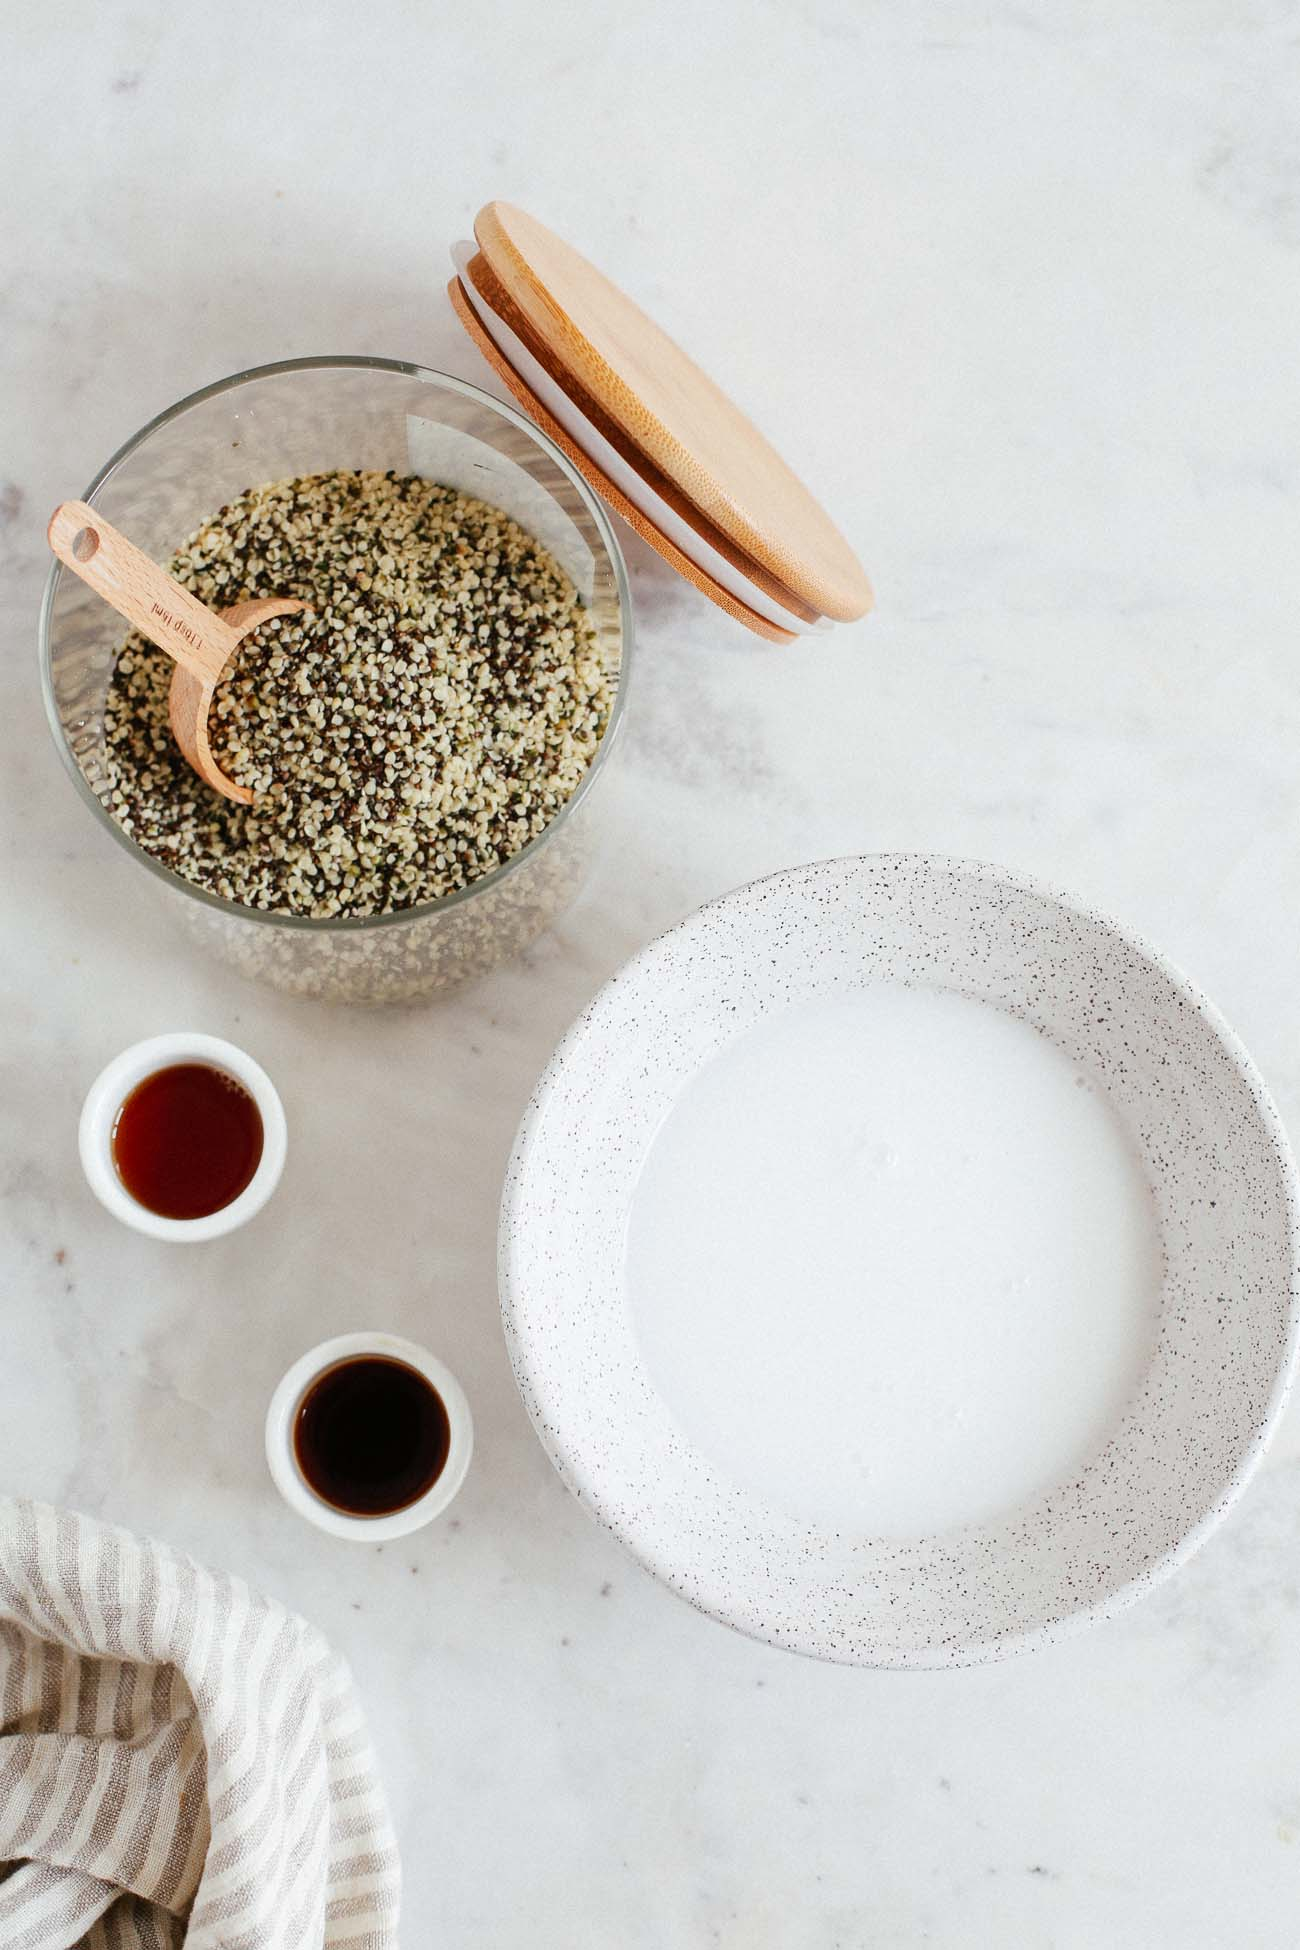 Set of two photos showing chia seeds mixed with coconut milk.